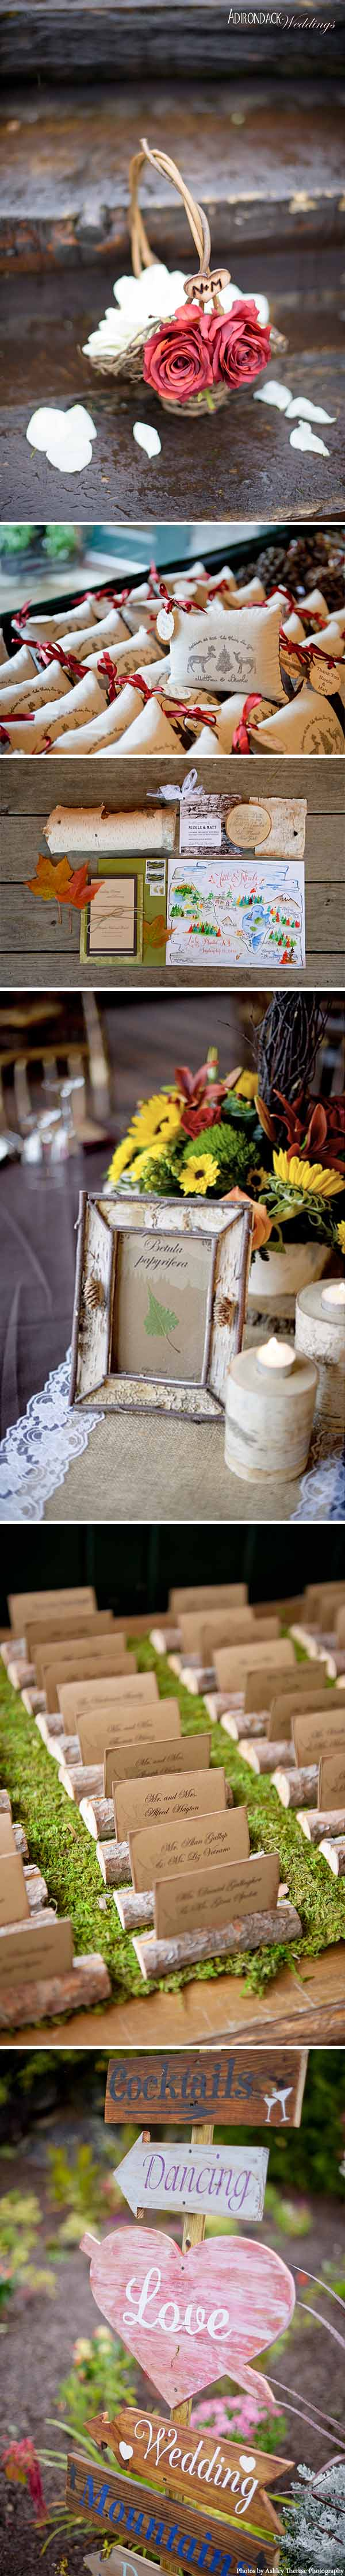 Nicole Wren Designs | Adirondack Weddings Magazine